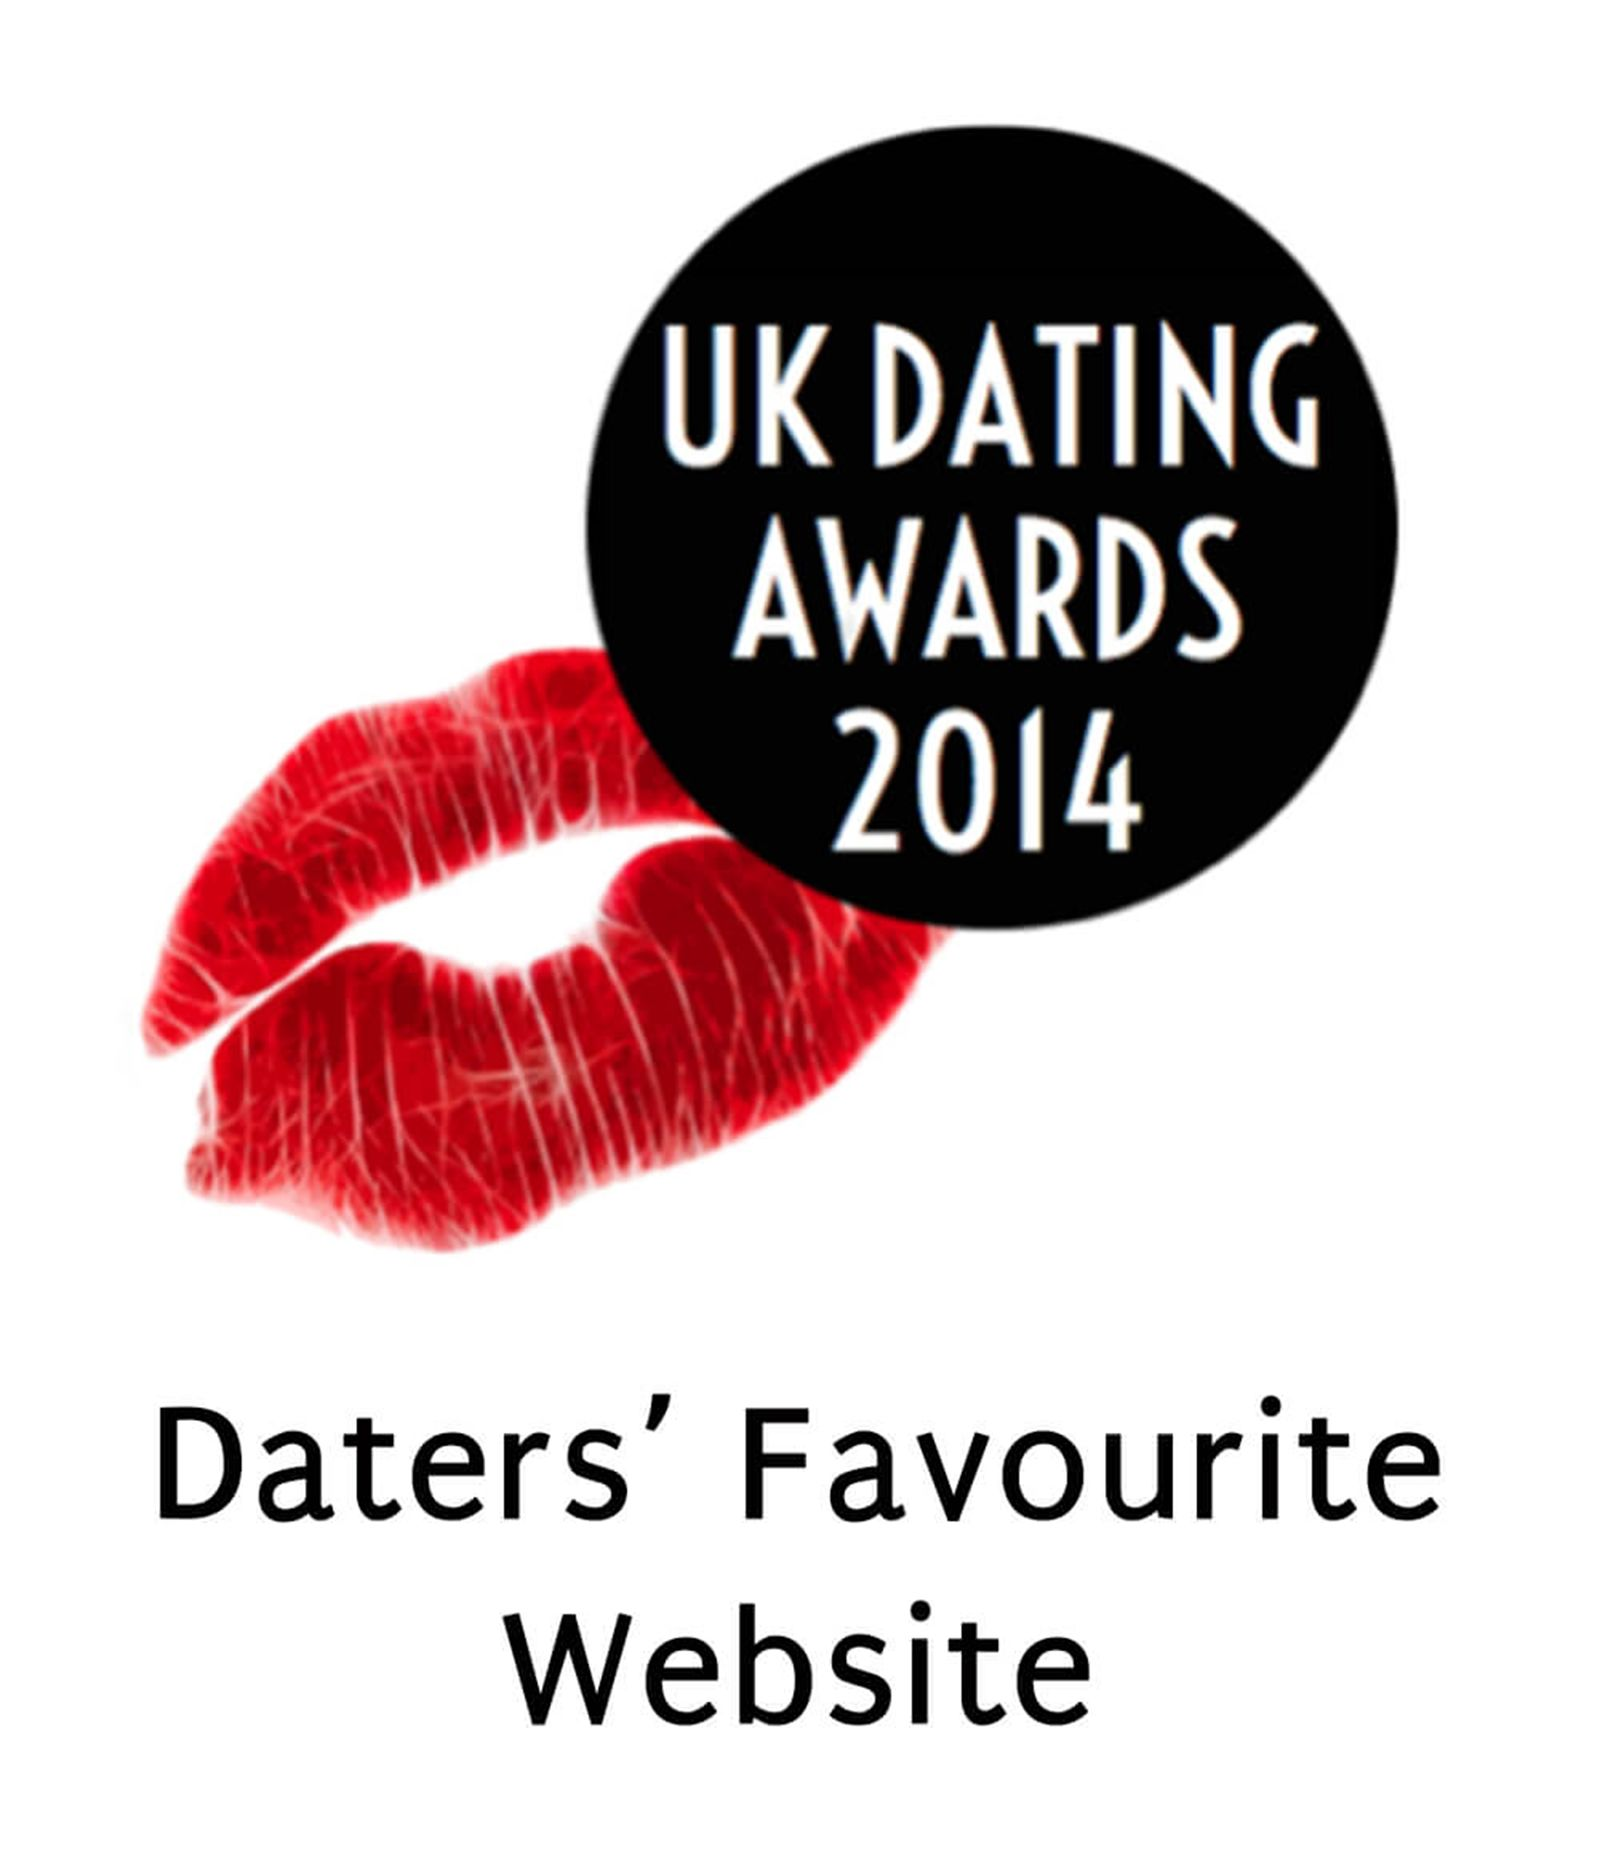 The Guardian Soulmates UK Dating Awards 2014 Daters